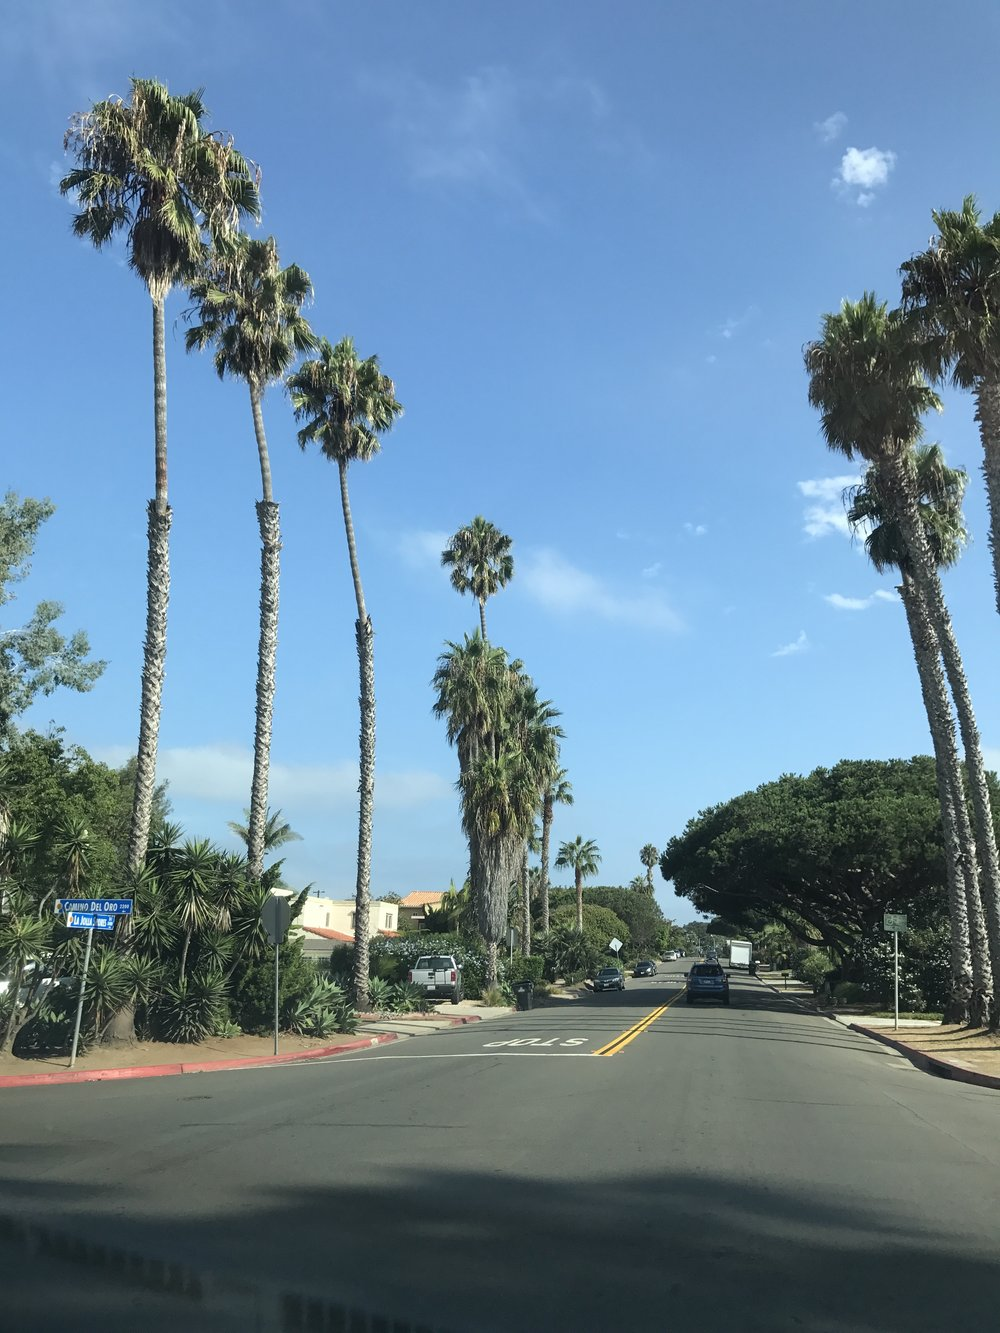 Driving through the beautiful neighborhoods of La Jolla.